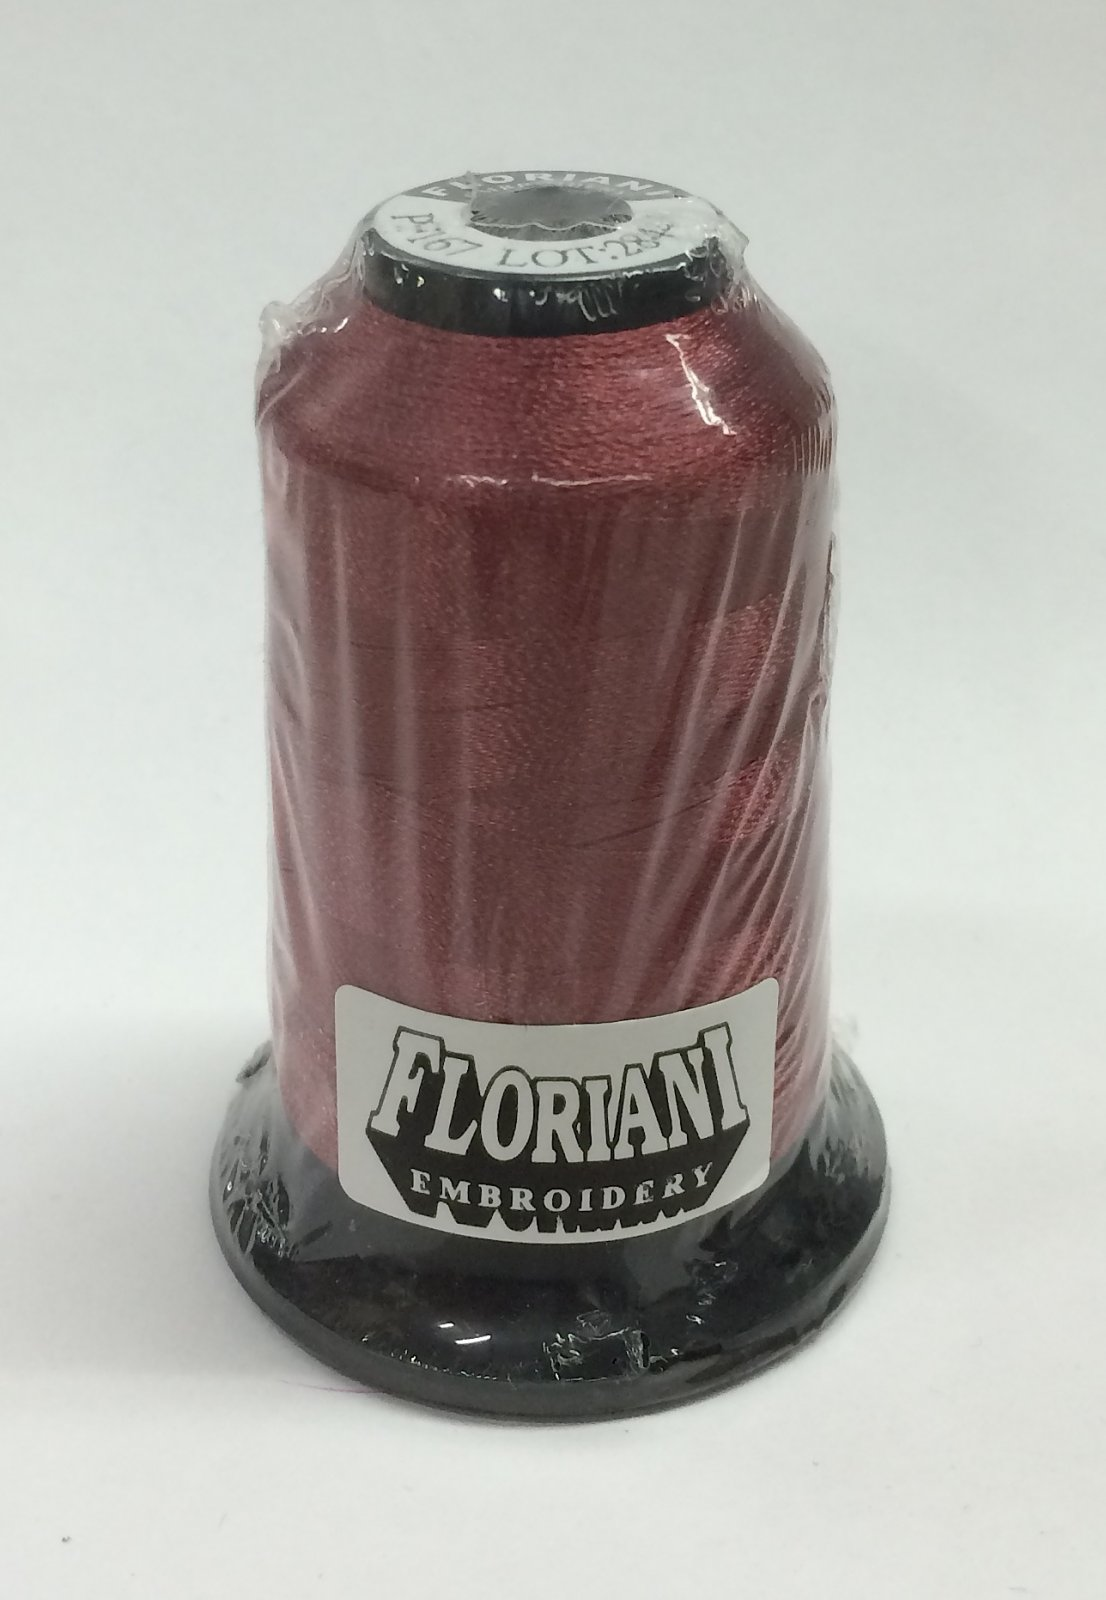 Floriani Embroidery Thread Color #0167